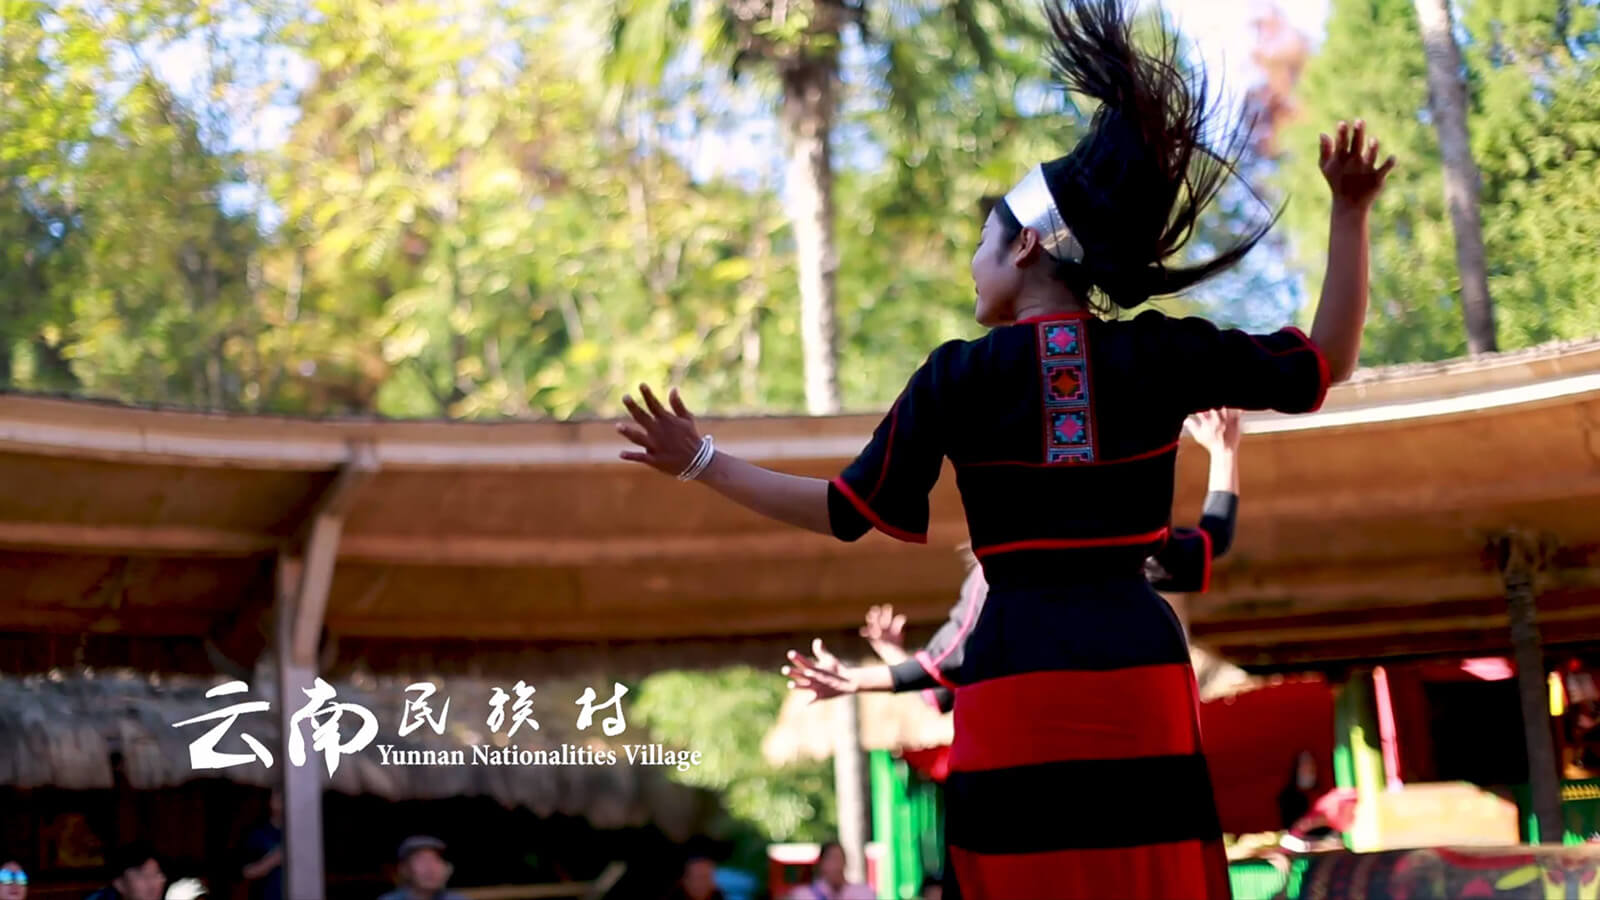 Yunnan Nationalities Village is the best destination in all of Kunming for learning about the cultural heritage and history of the people of Yunnan, China